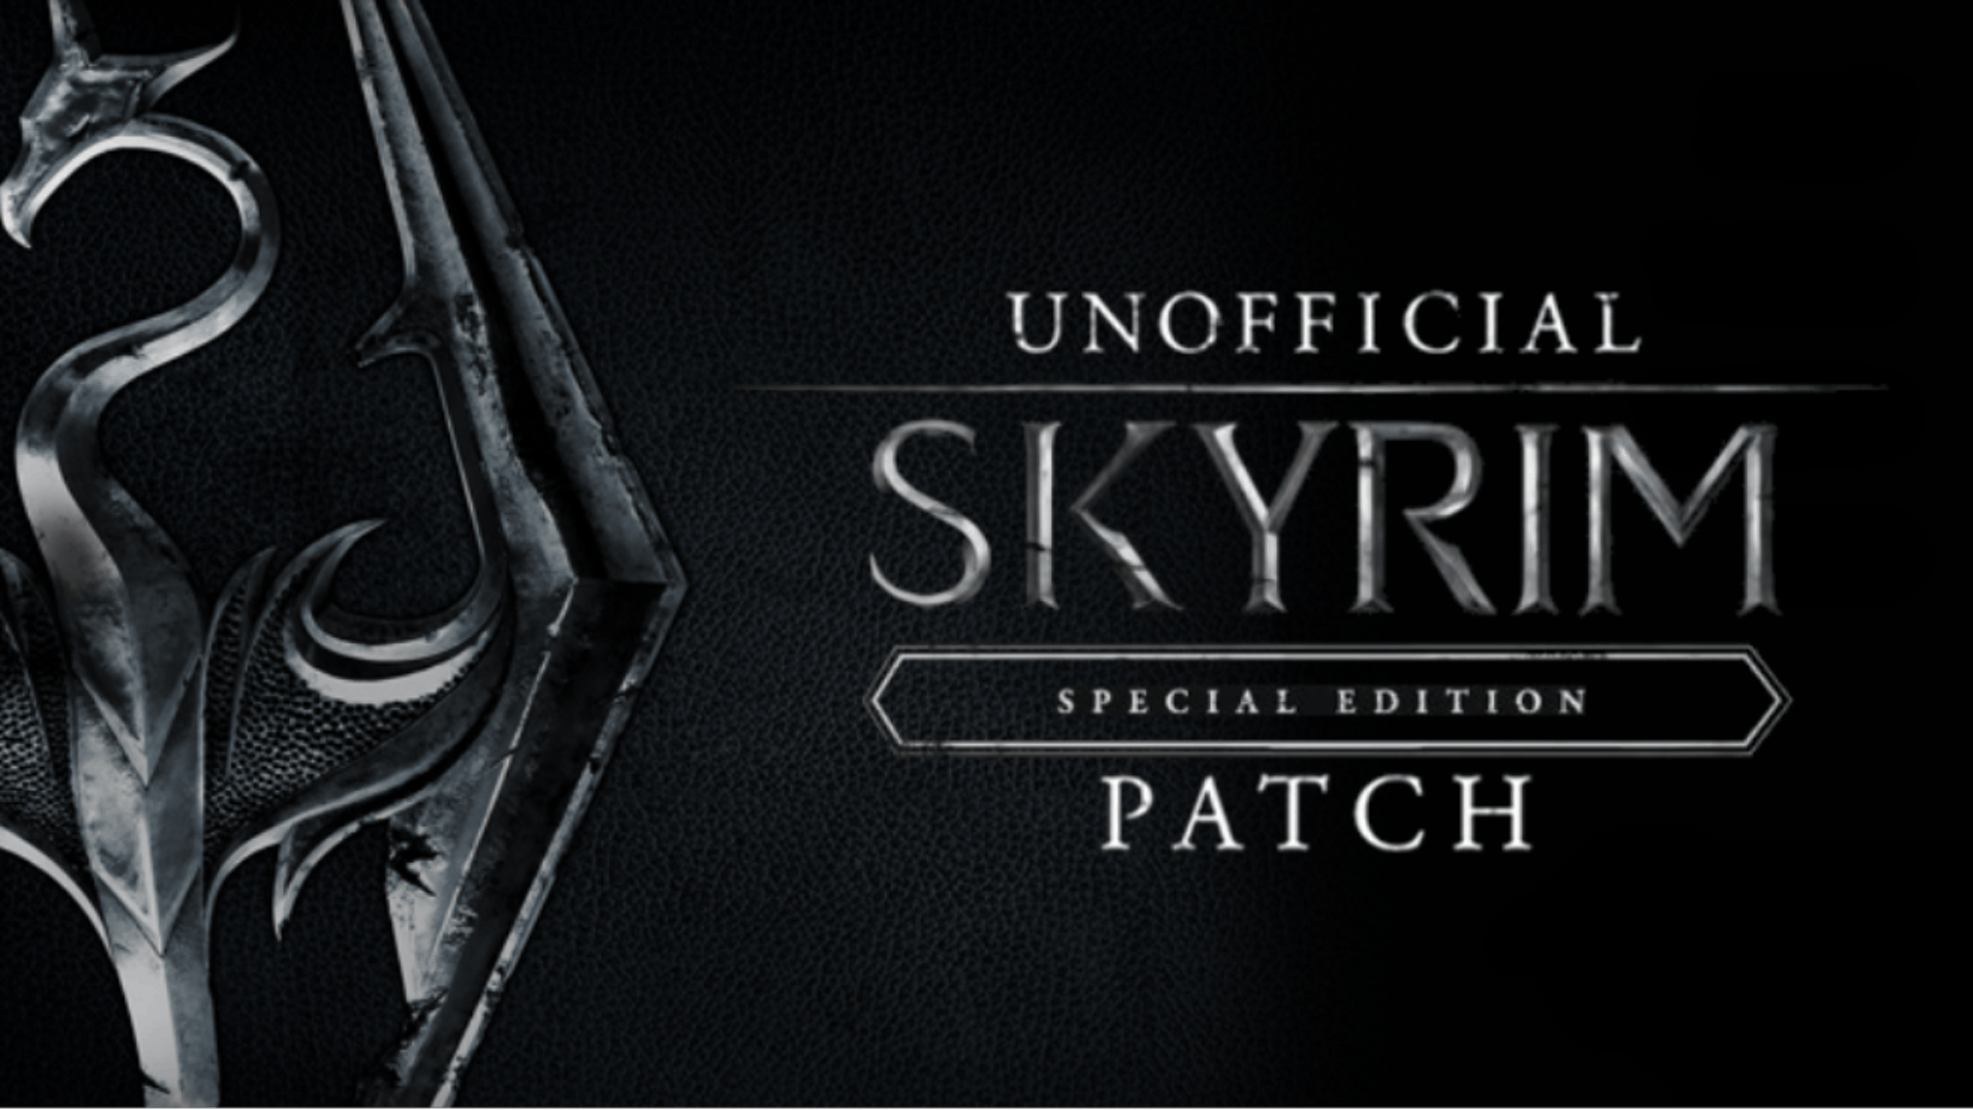 Skyrim Special Edition Unofficial Patch